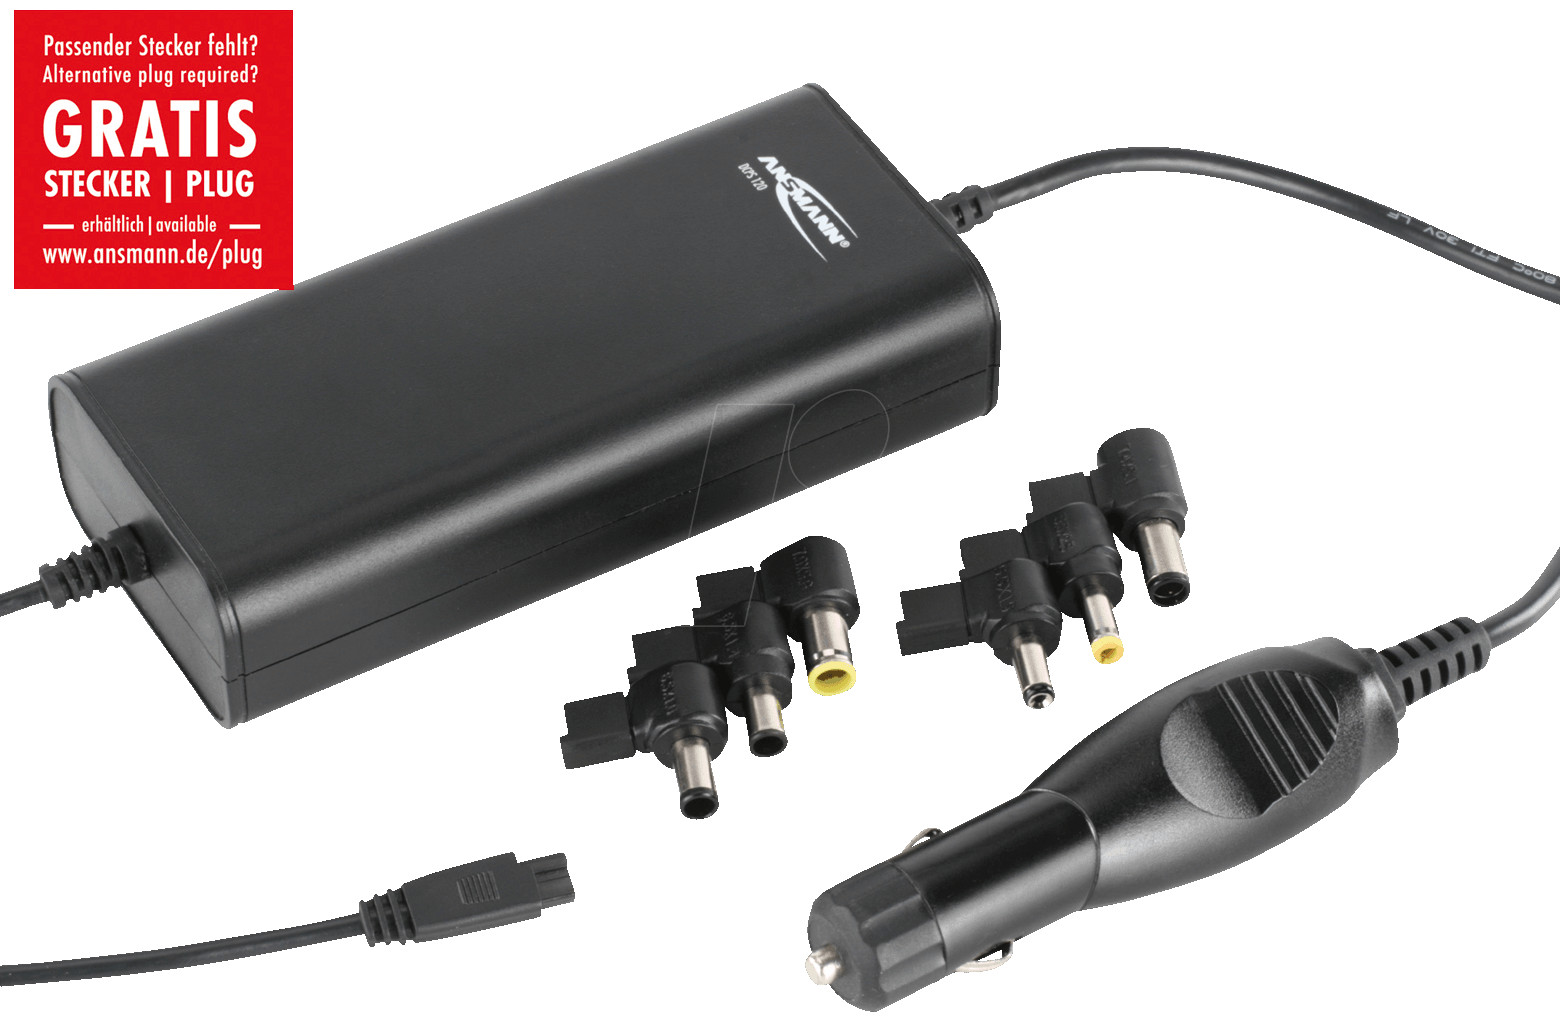 ansmann 12v laptop adapter reichelt DCPS_120_01